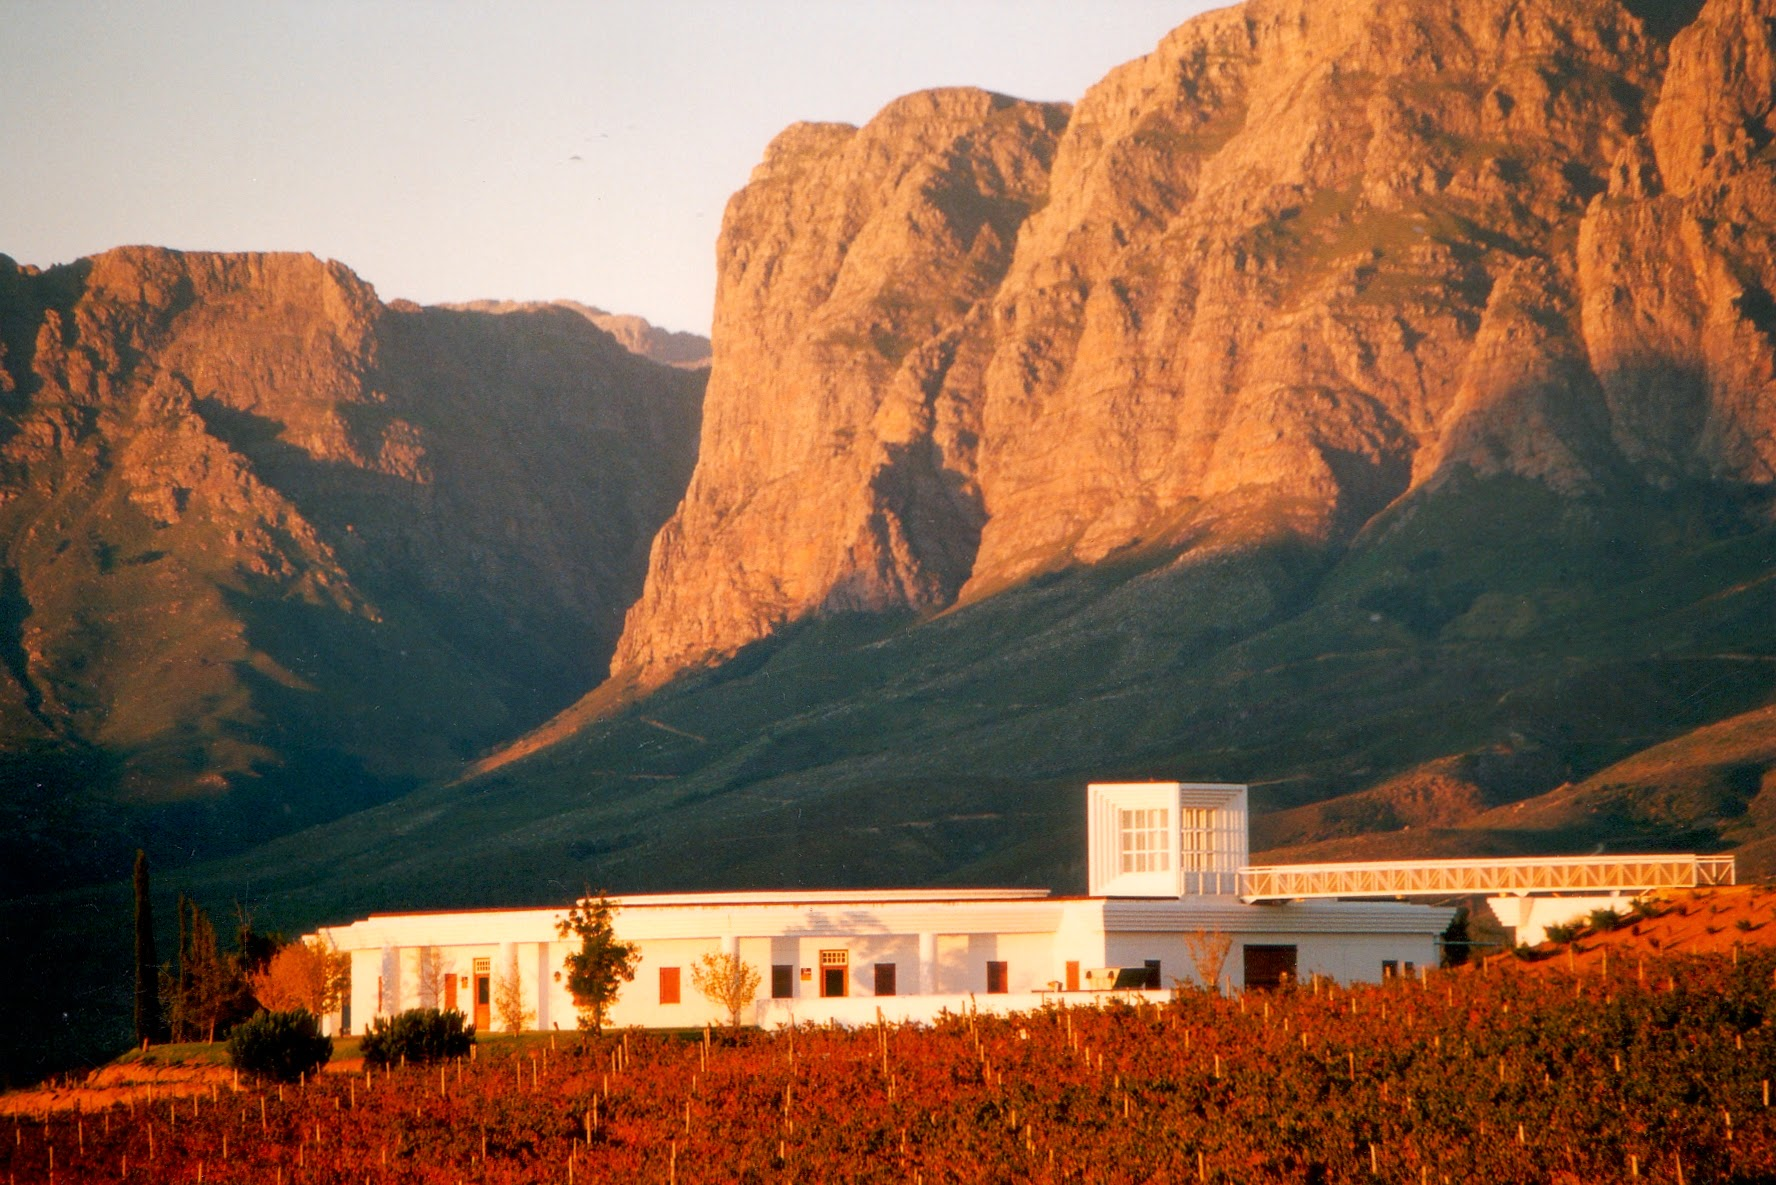 Vergelegen Winery and mountains